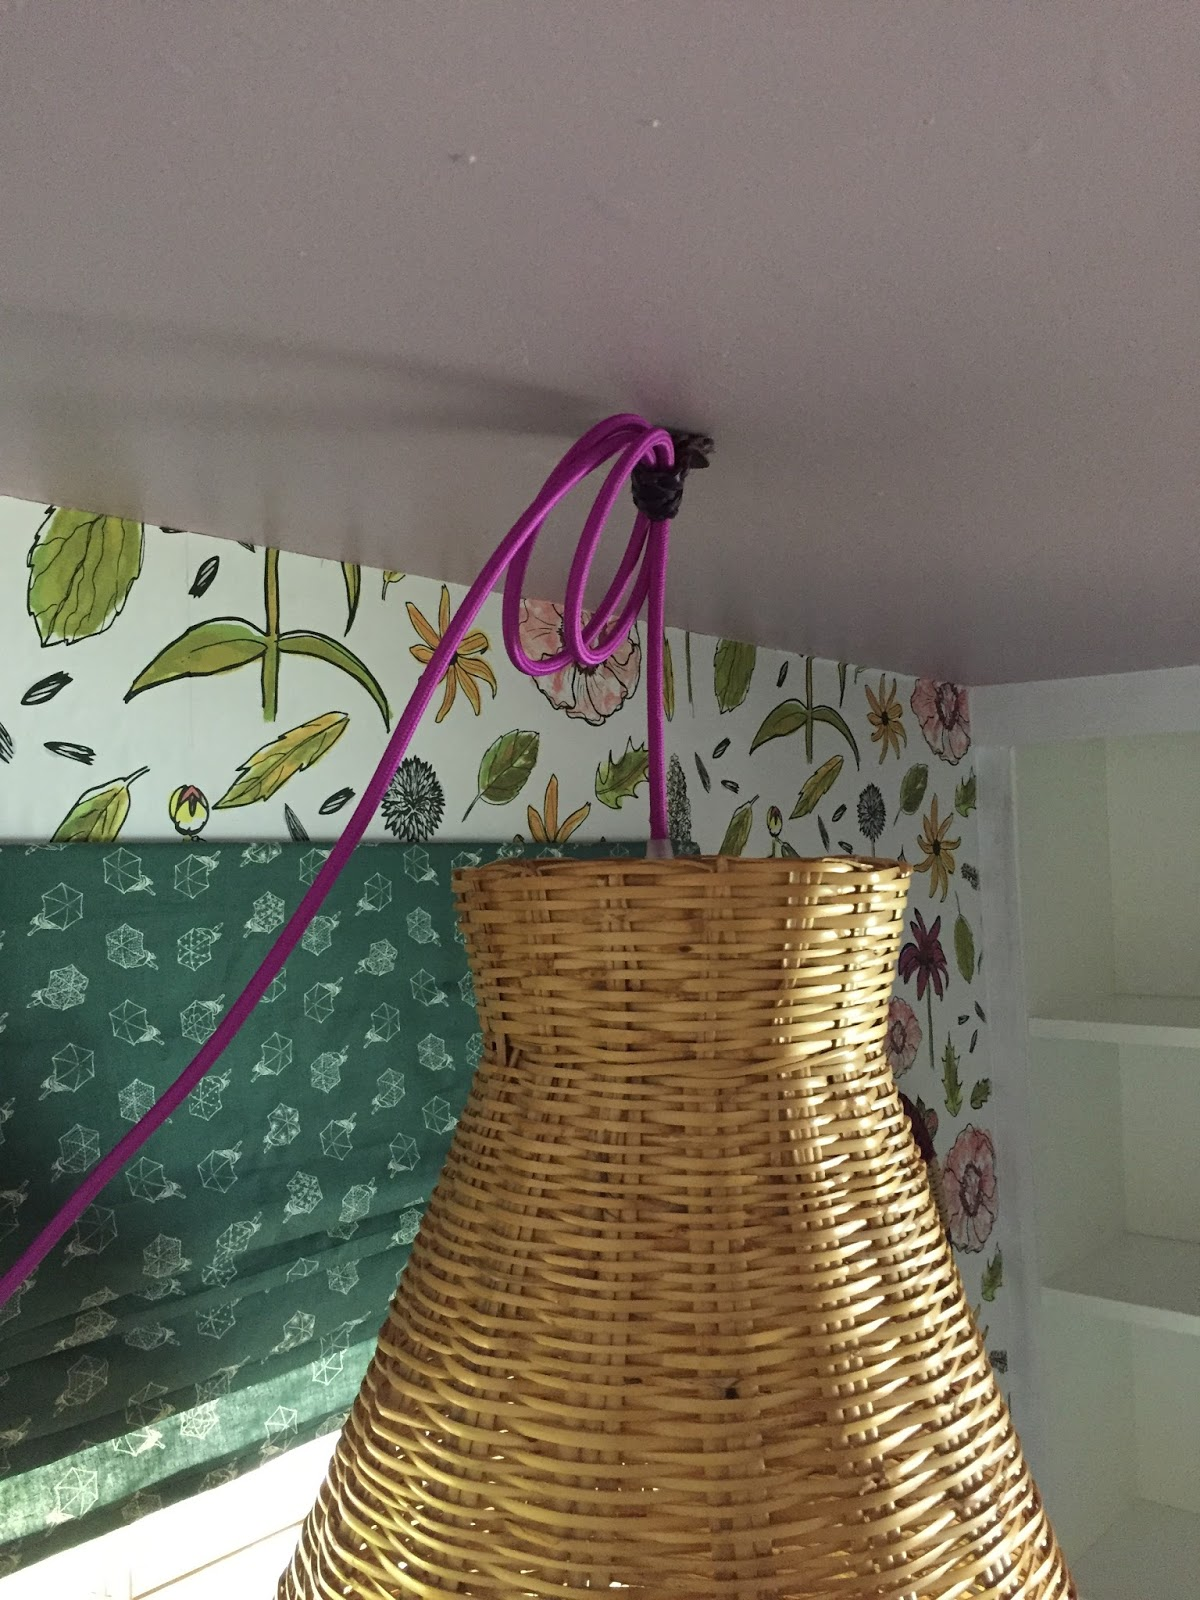 Easy DIY basket pendant light and cord mount.  It's a pretty inexpensive way to add style and actual, literal light to a part of your home.